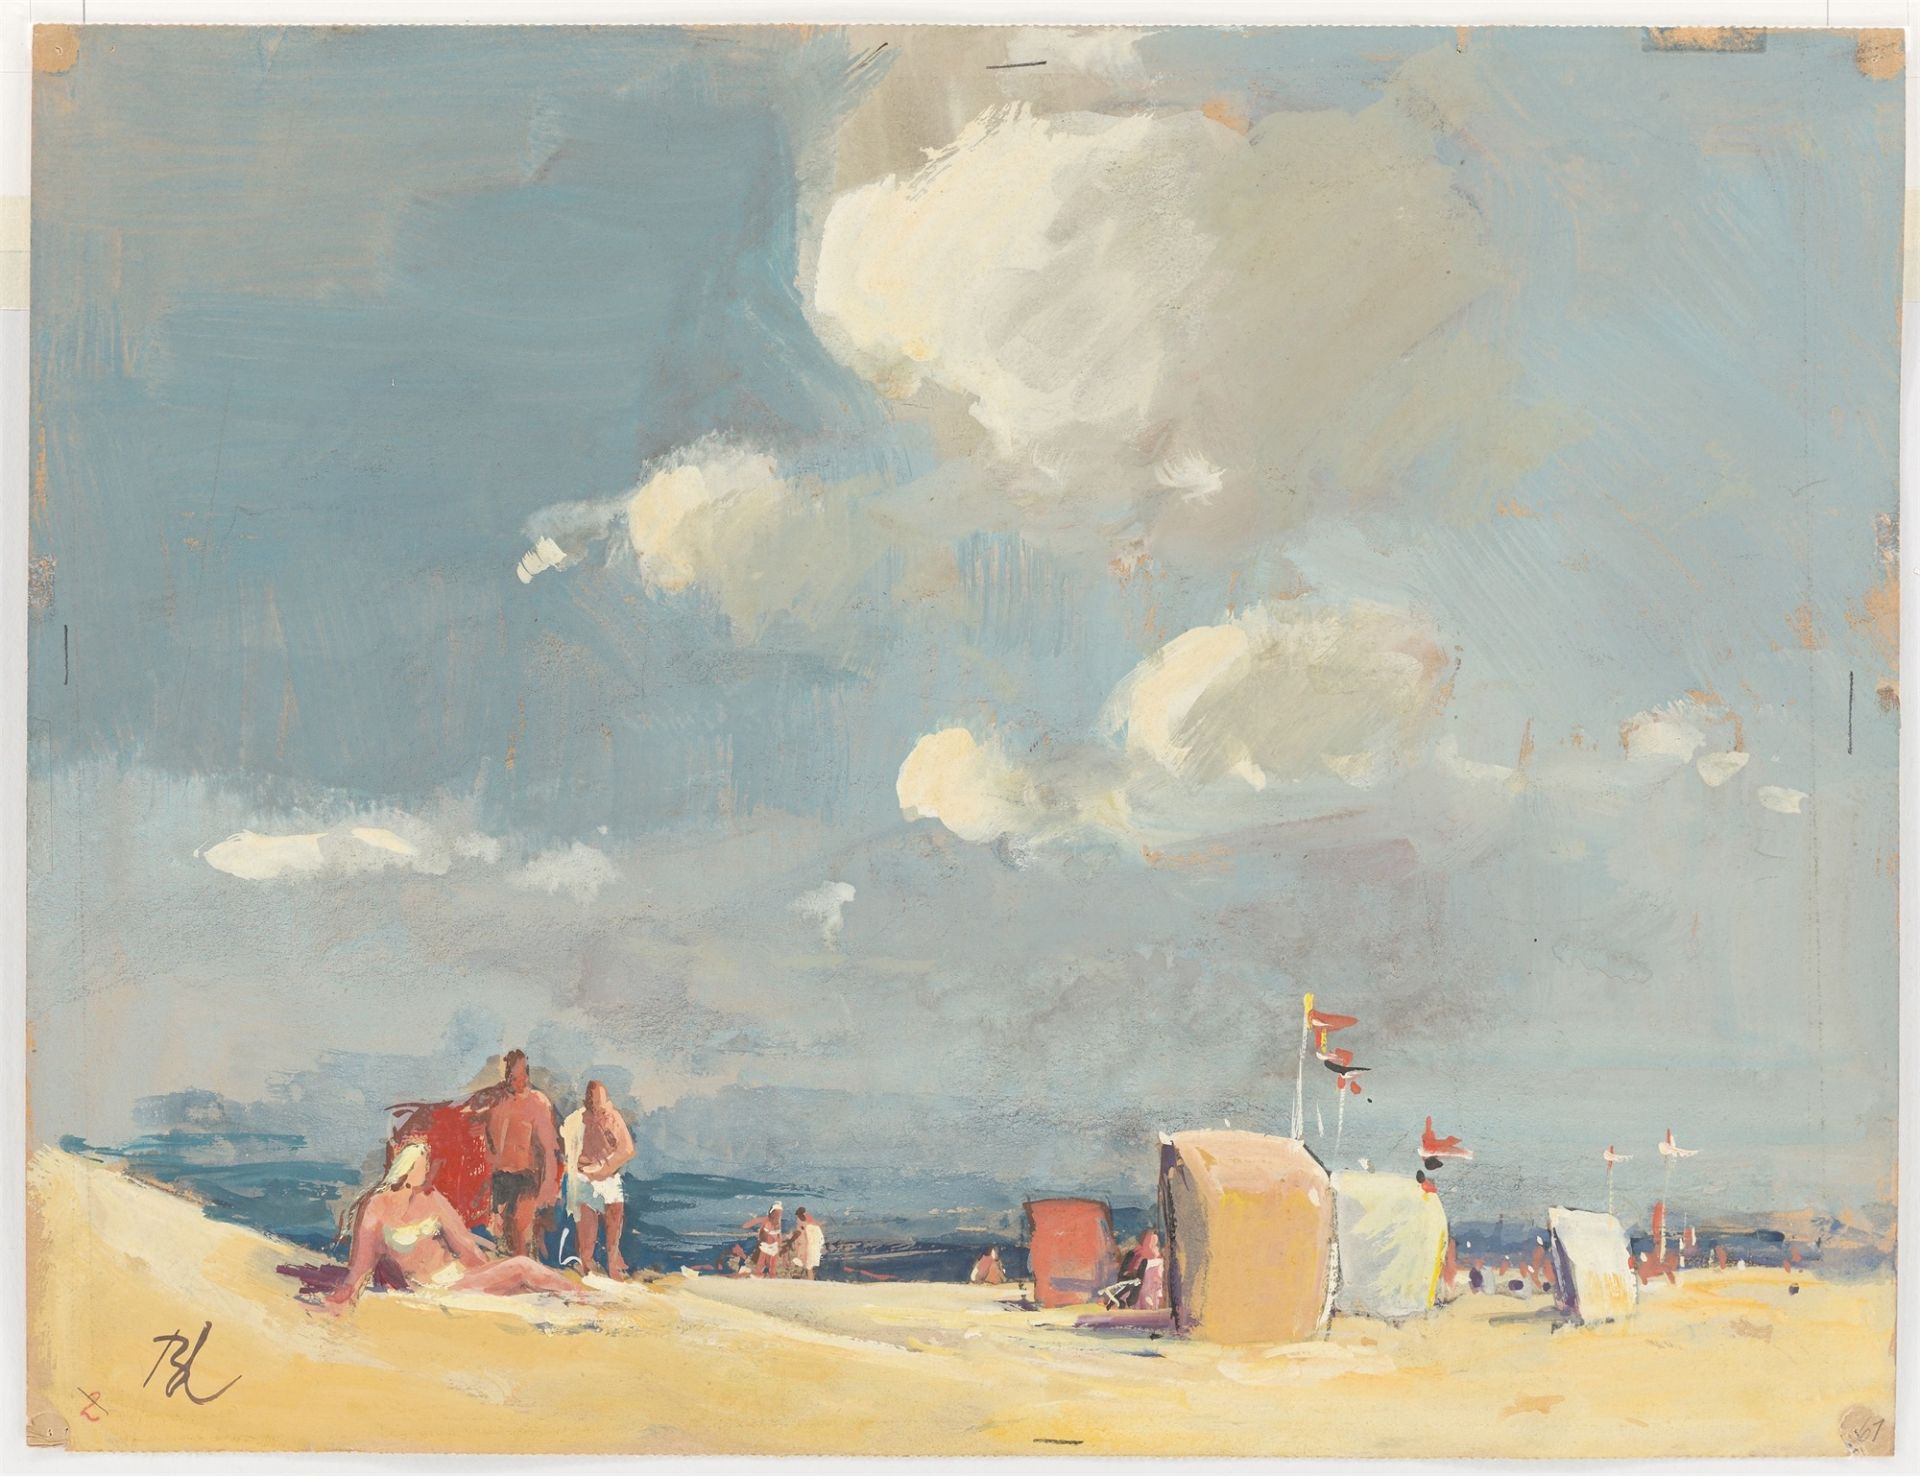 Günther Blechschmidt. On the beach. After 1945 - Image 2 of 3